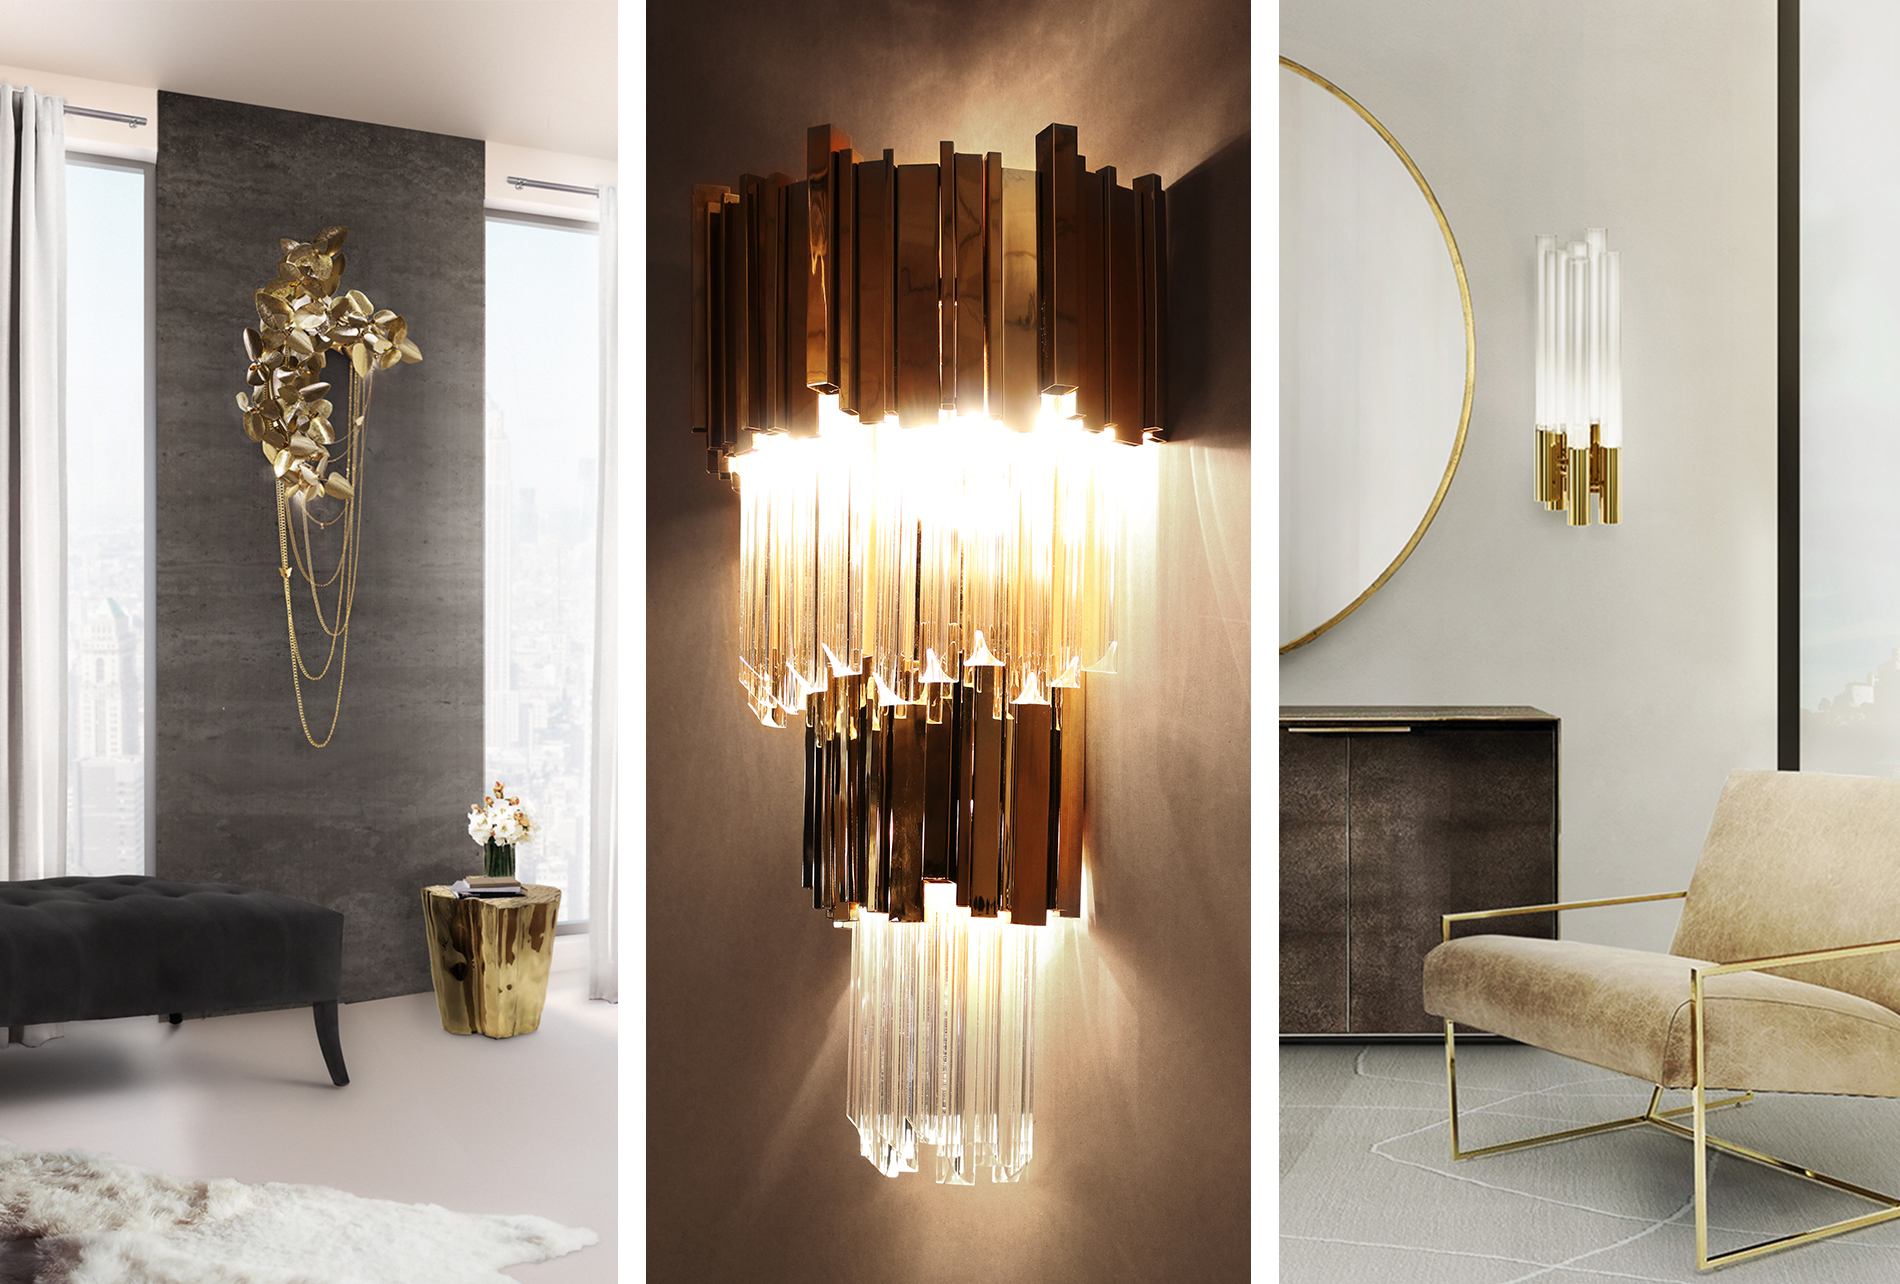 Luxury design: wall lights by Luxxu to create a glamorous decor luxury christmas decorations Luxury Christmas Decorations You Should be Using Luxxu Wall Lamps luxury christmas decorations Luxury Christmas Decorations You Should be Using Luxxu Wall Lamps